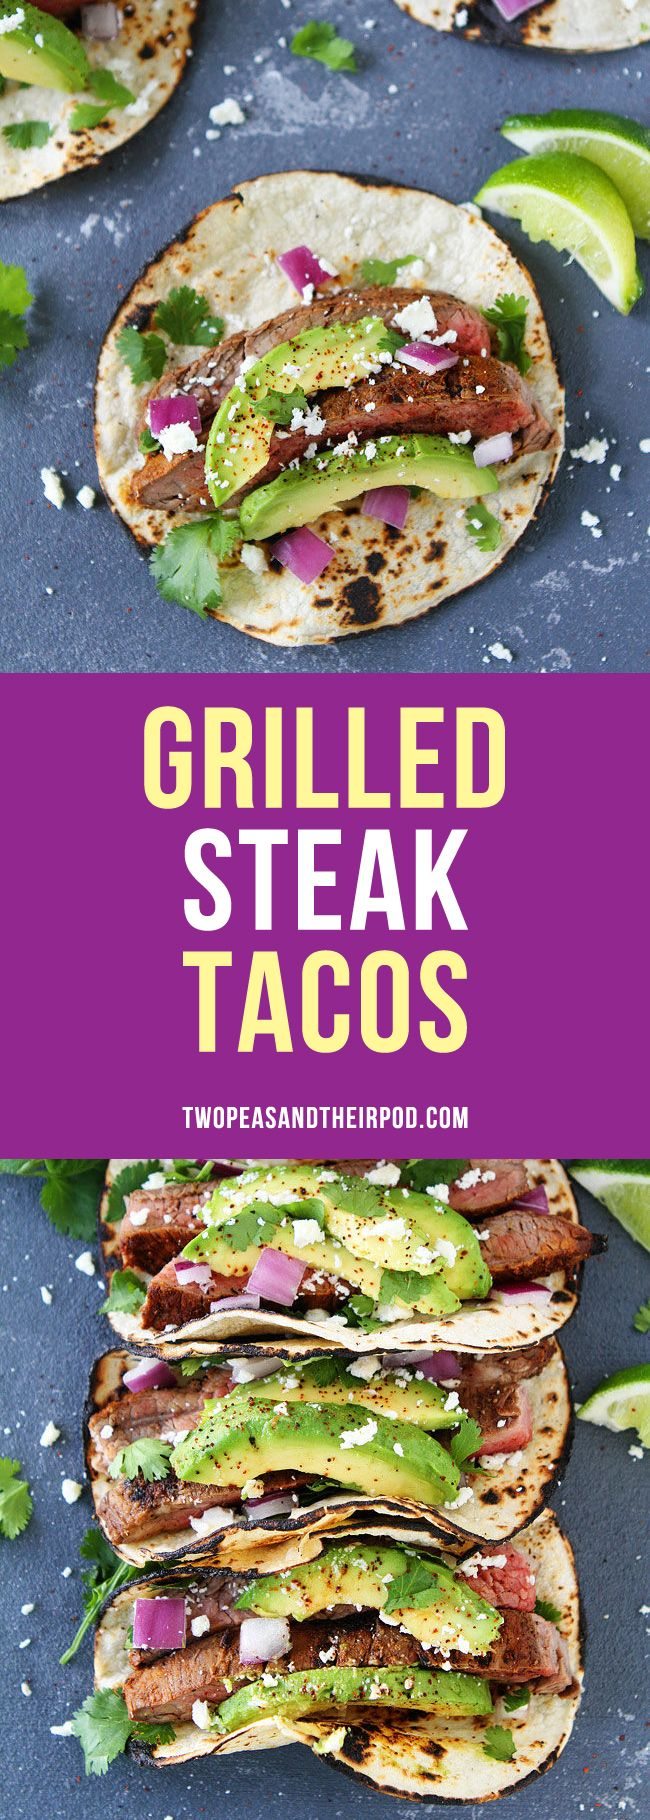 Grilled Steak Tacos with avocado, cilantro, red onion, and queso fresco! These easy tacos make a great summer meal!